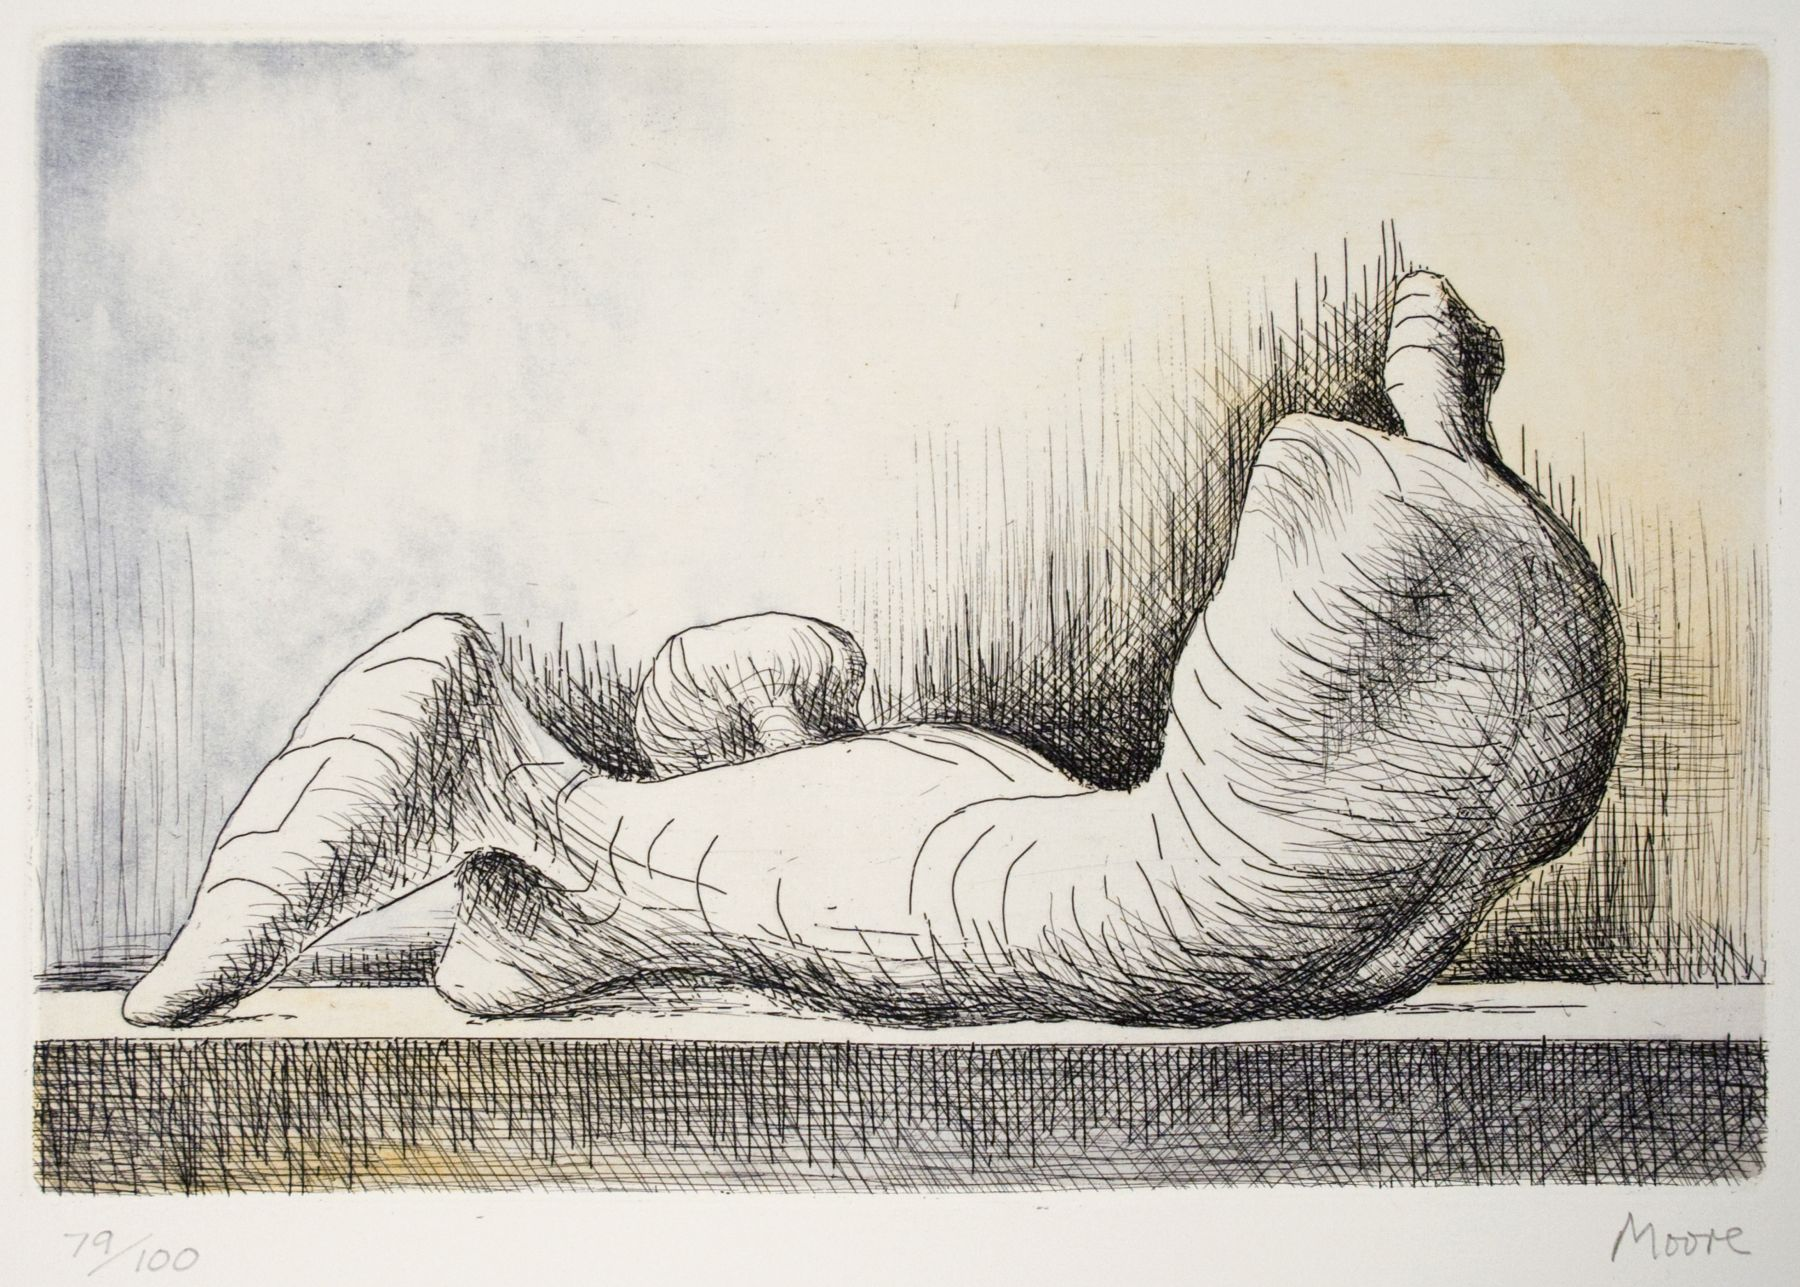 Henry Moore, Reclining Figure- Back, 1976, etching and acquatint, 6 1/4  x 9 1/2 inches image size, 25 1/2 x 18 inches paper size